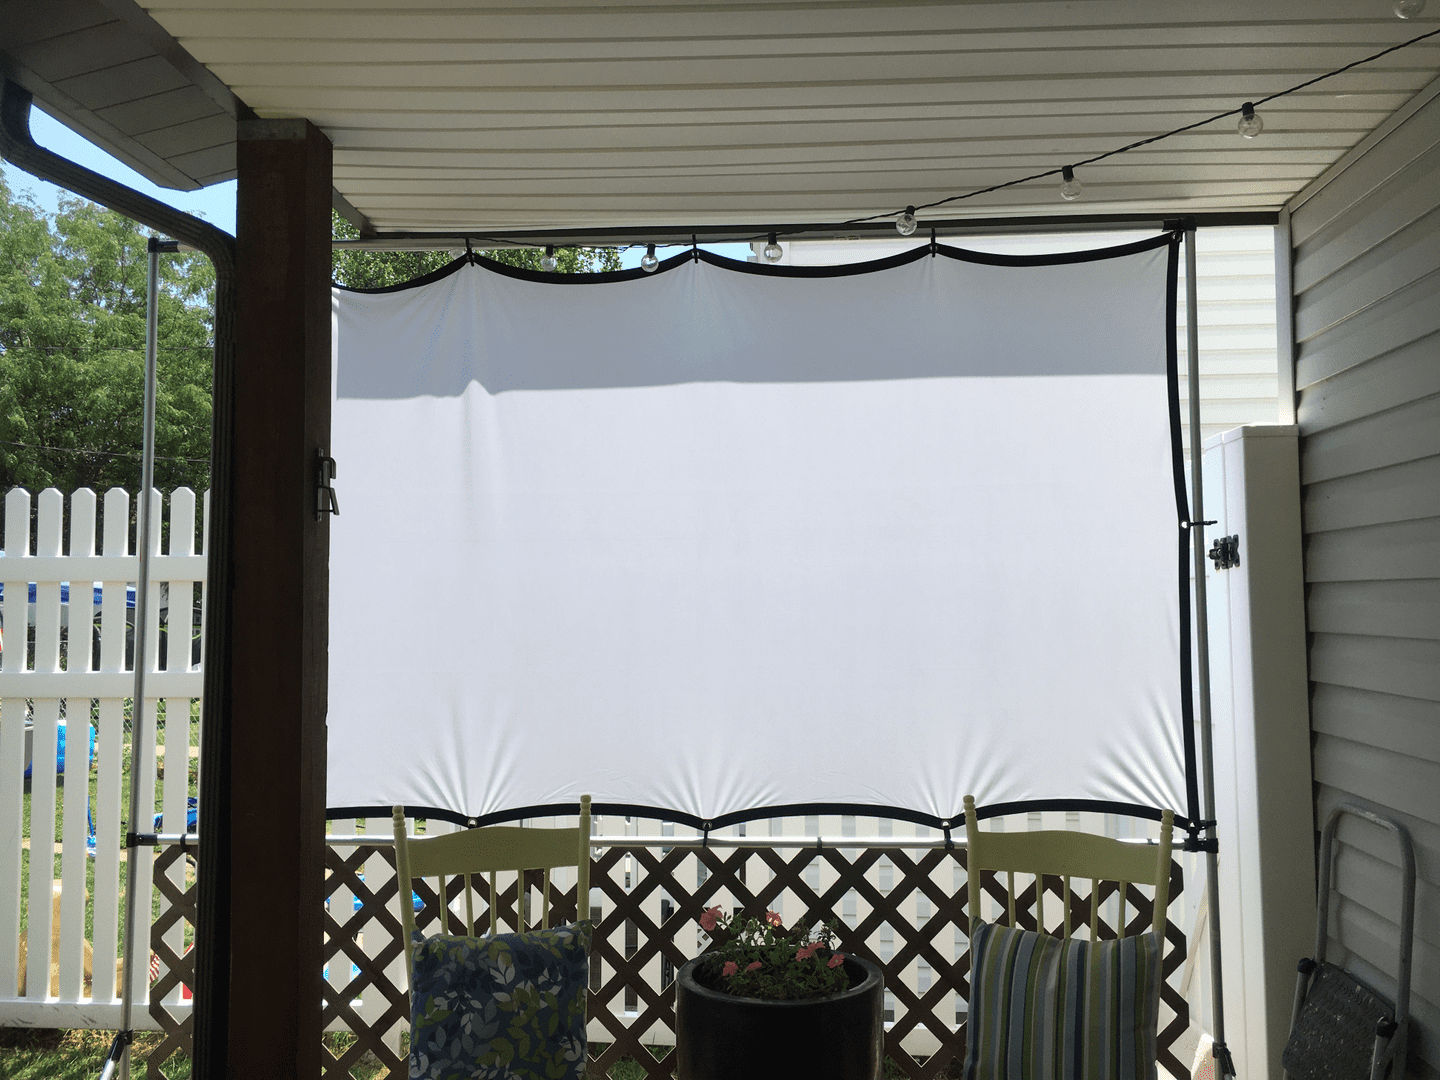 DIY projector screen frame mounted to a stand